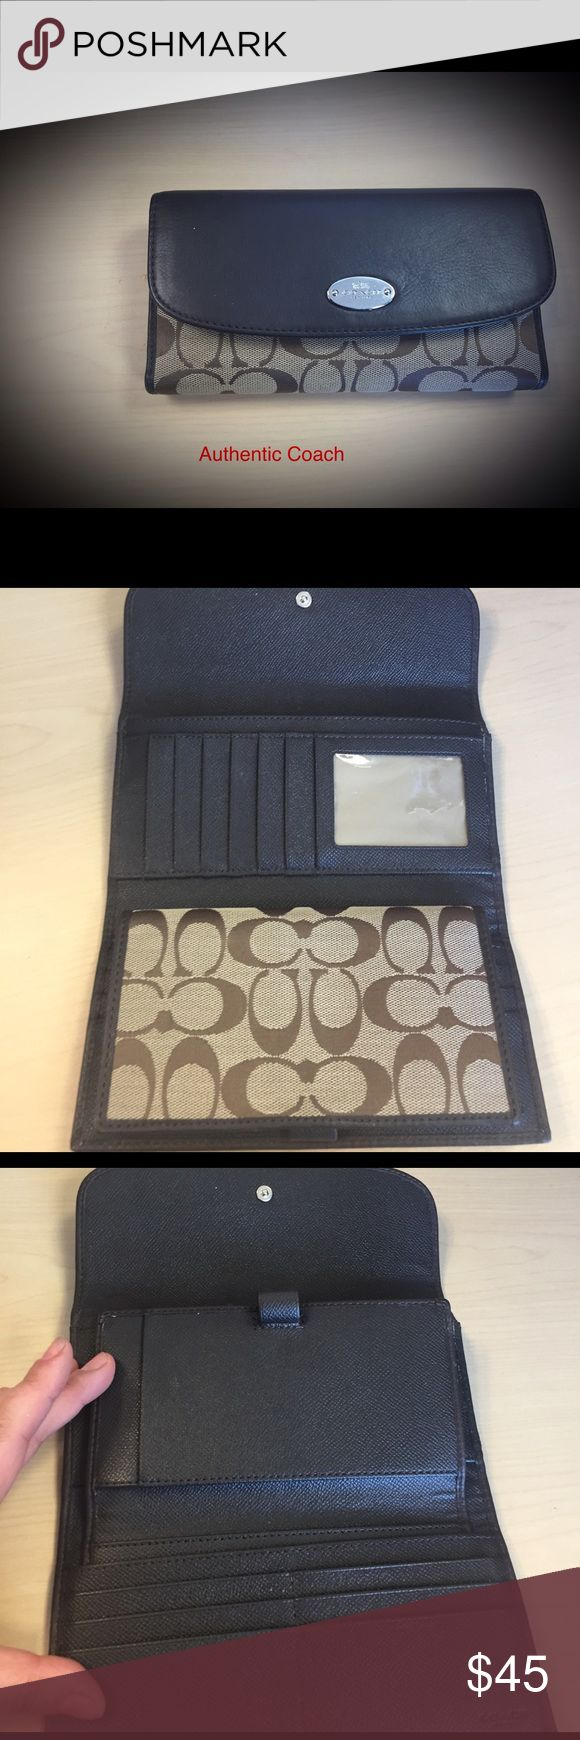 Authentic Coach Wallet Nice brown wallet with check holder. In great condition. coach  Bags Wallets